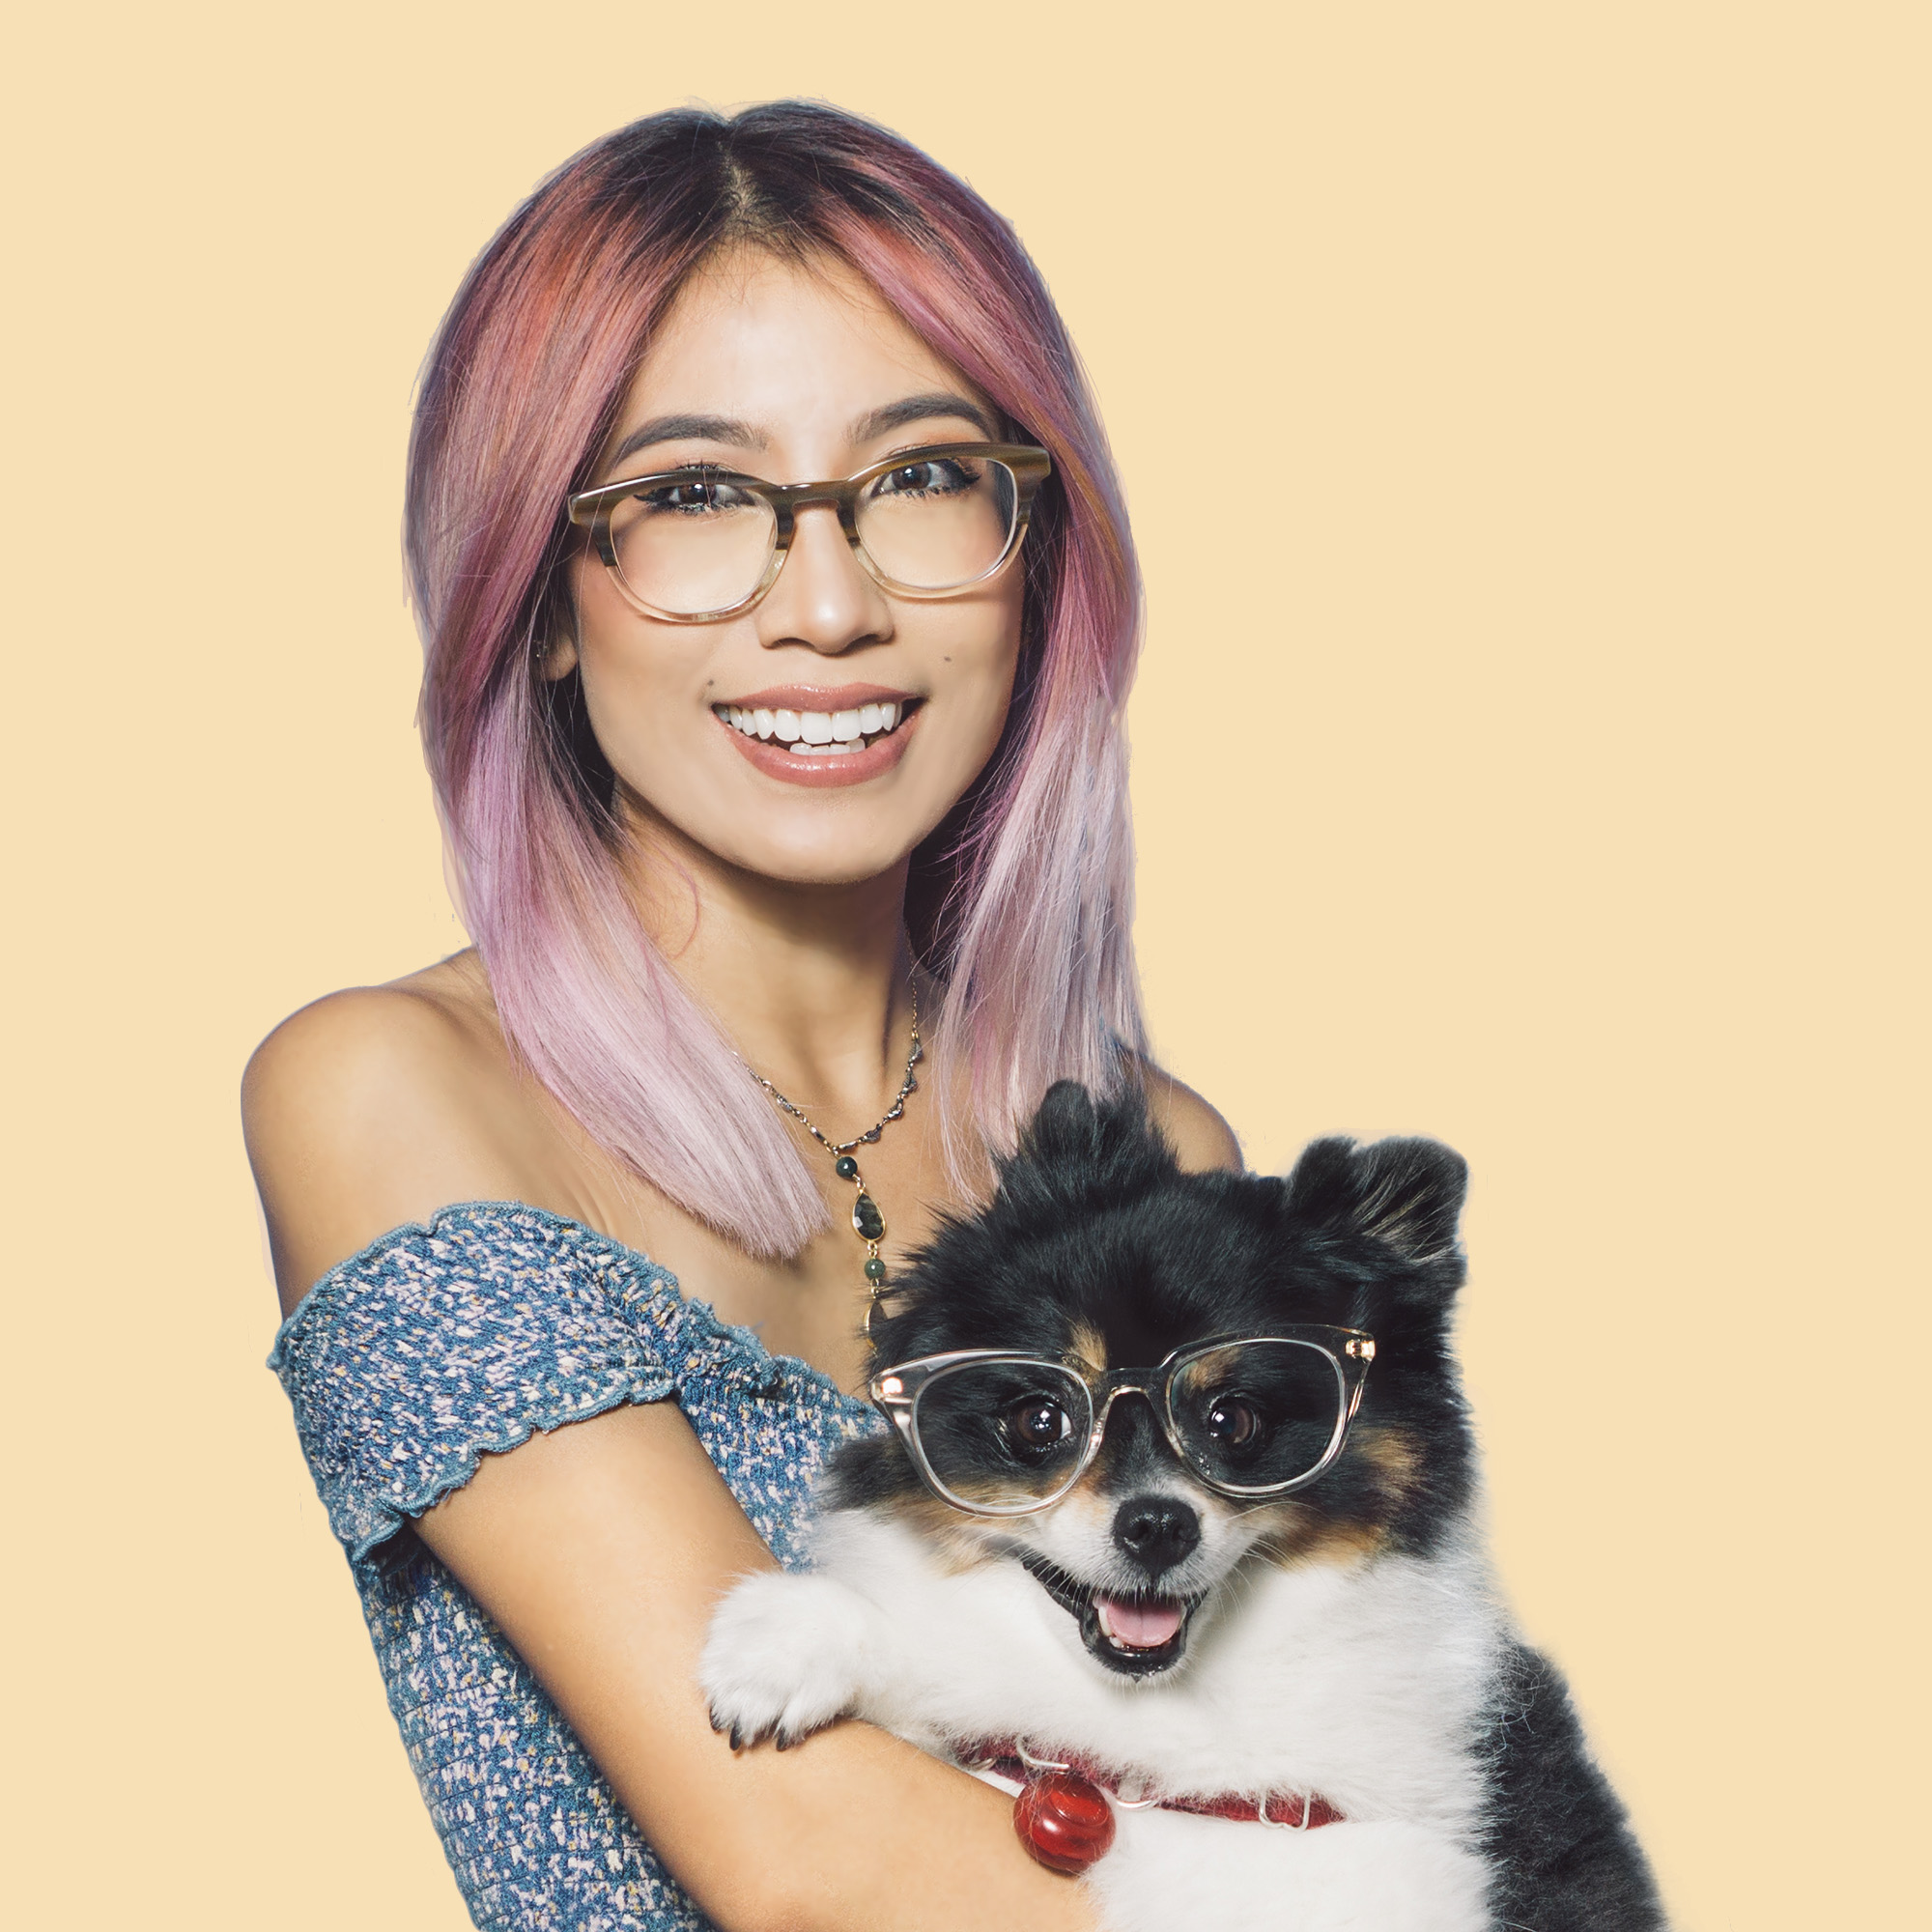 Sharing the eyewear love with our pup, Layla!